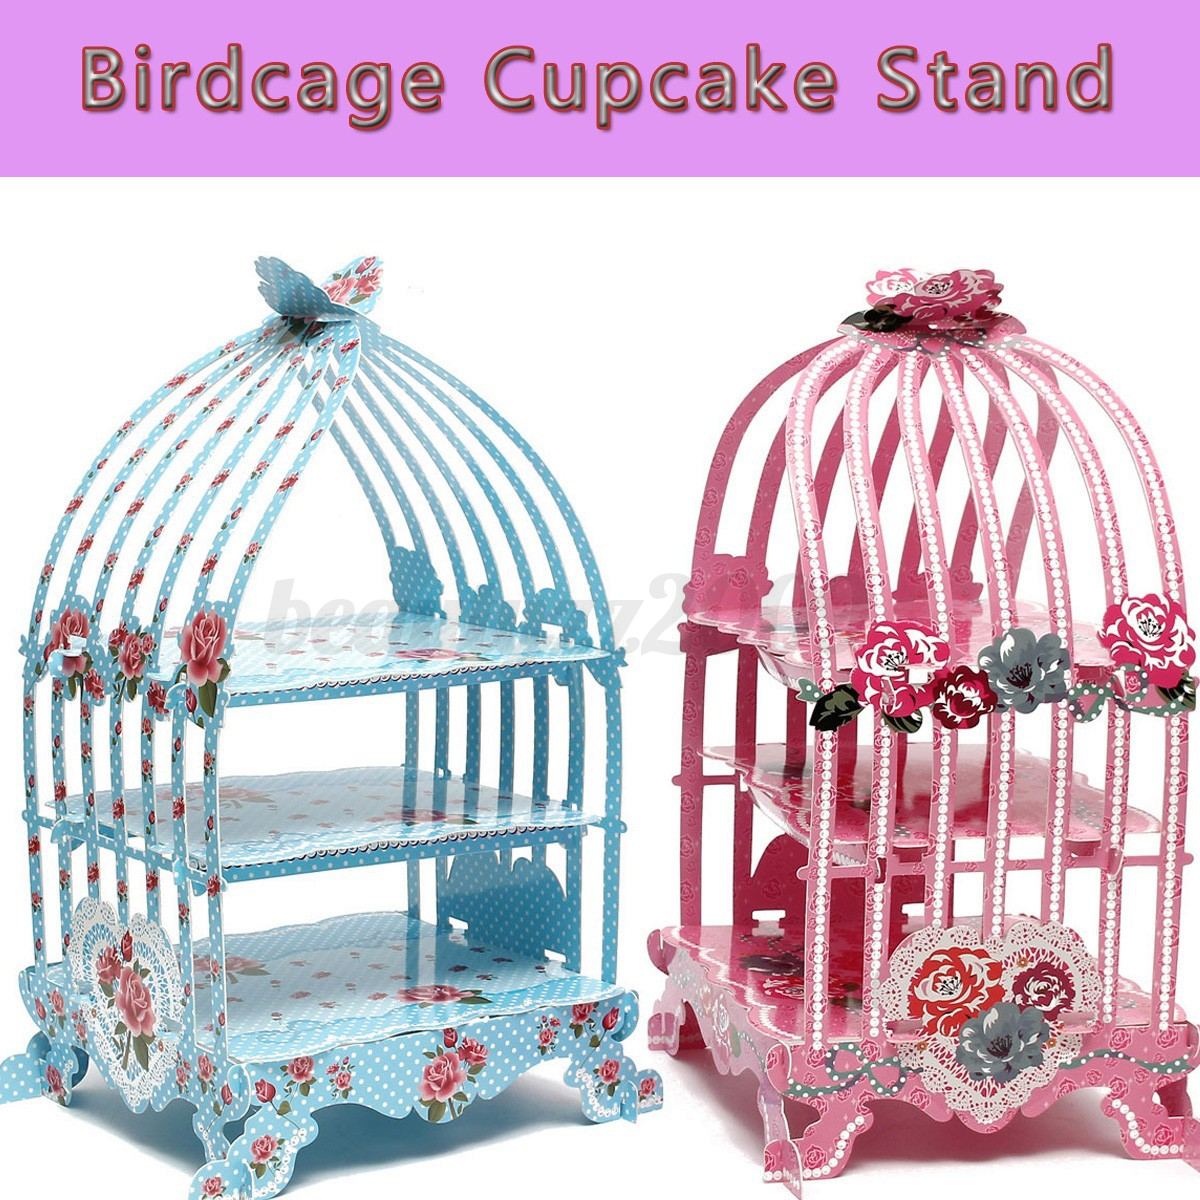 Birdcage Cupcake Cardboard Cake Stand Vintage Wedding Tea Party